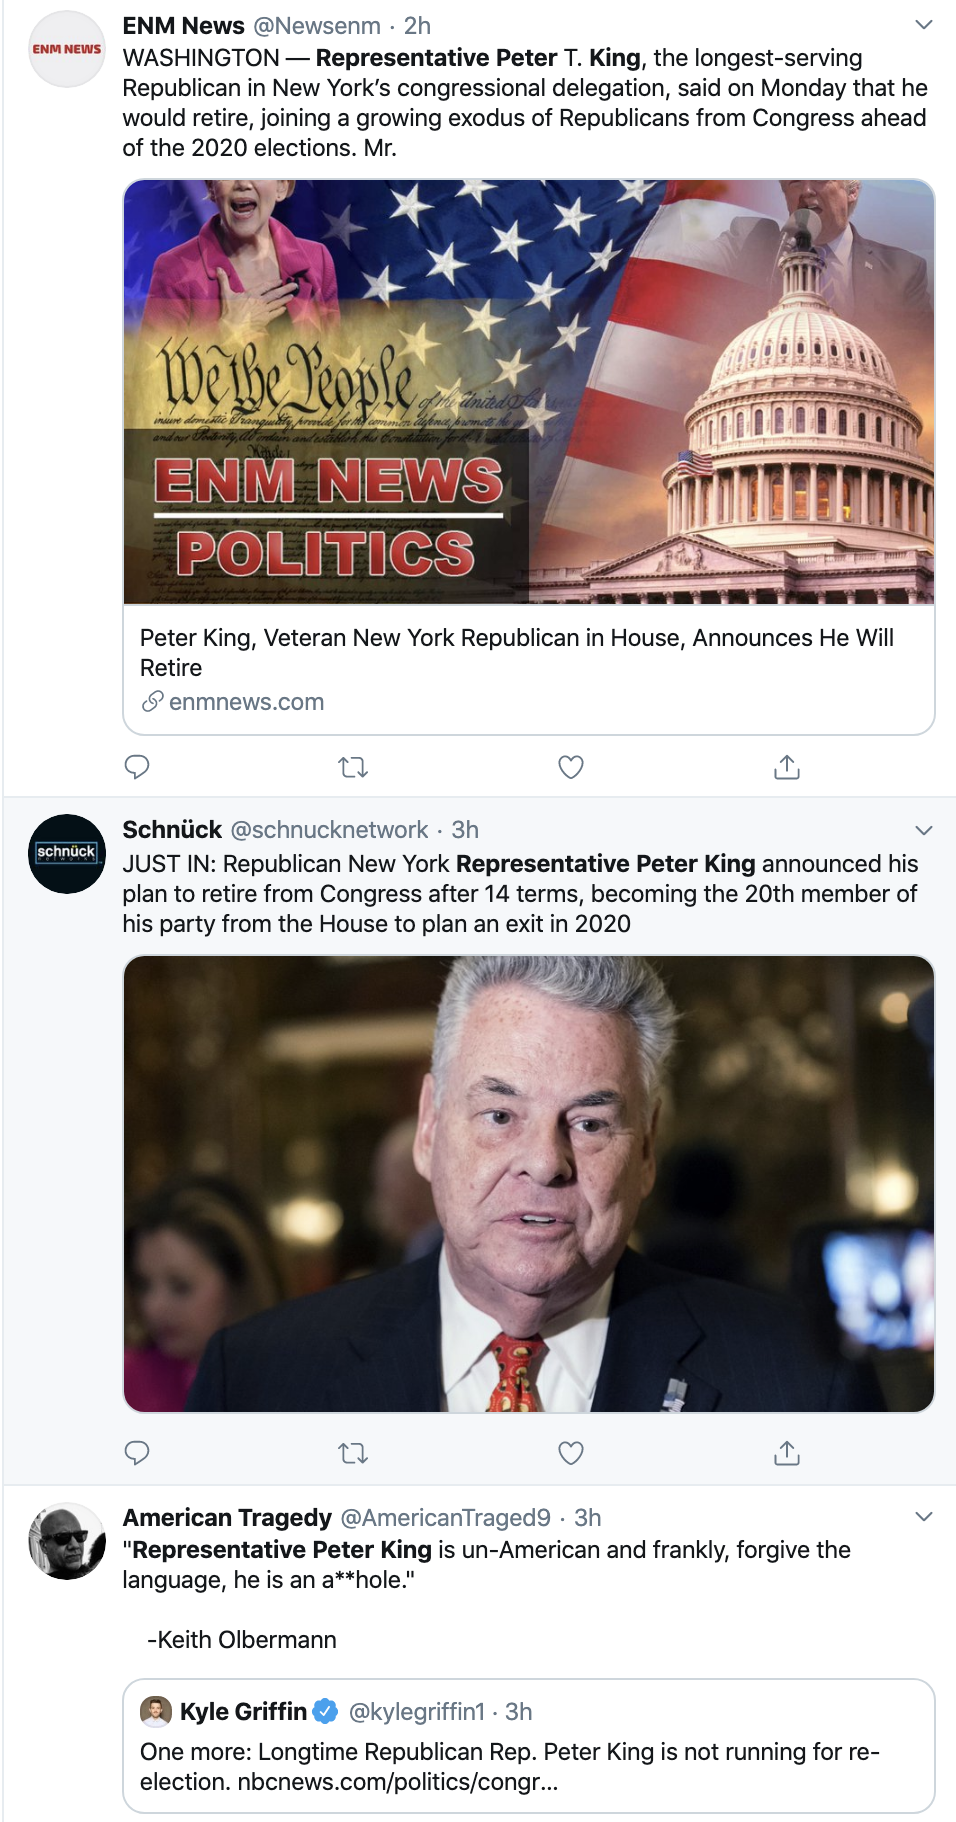 Screen-Shot-2019-11-11-at-10.30.04-AM Congressman Resigns Abruptly - Republicans Lose Party Staple Domestic Policy Donald Trump Election 2016 Election 2018 Election 2020 Environment Foreign Policy Gun Control Politics Terrorism Top Stories